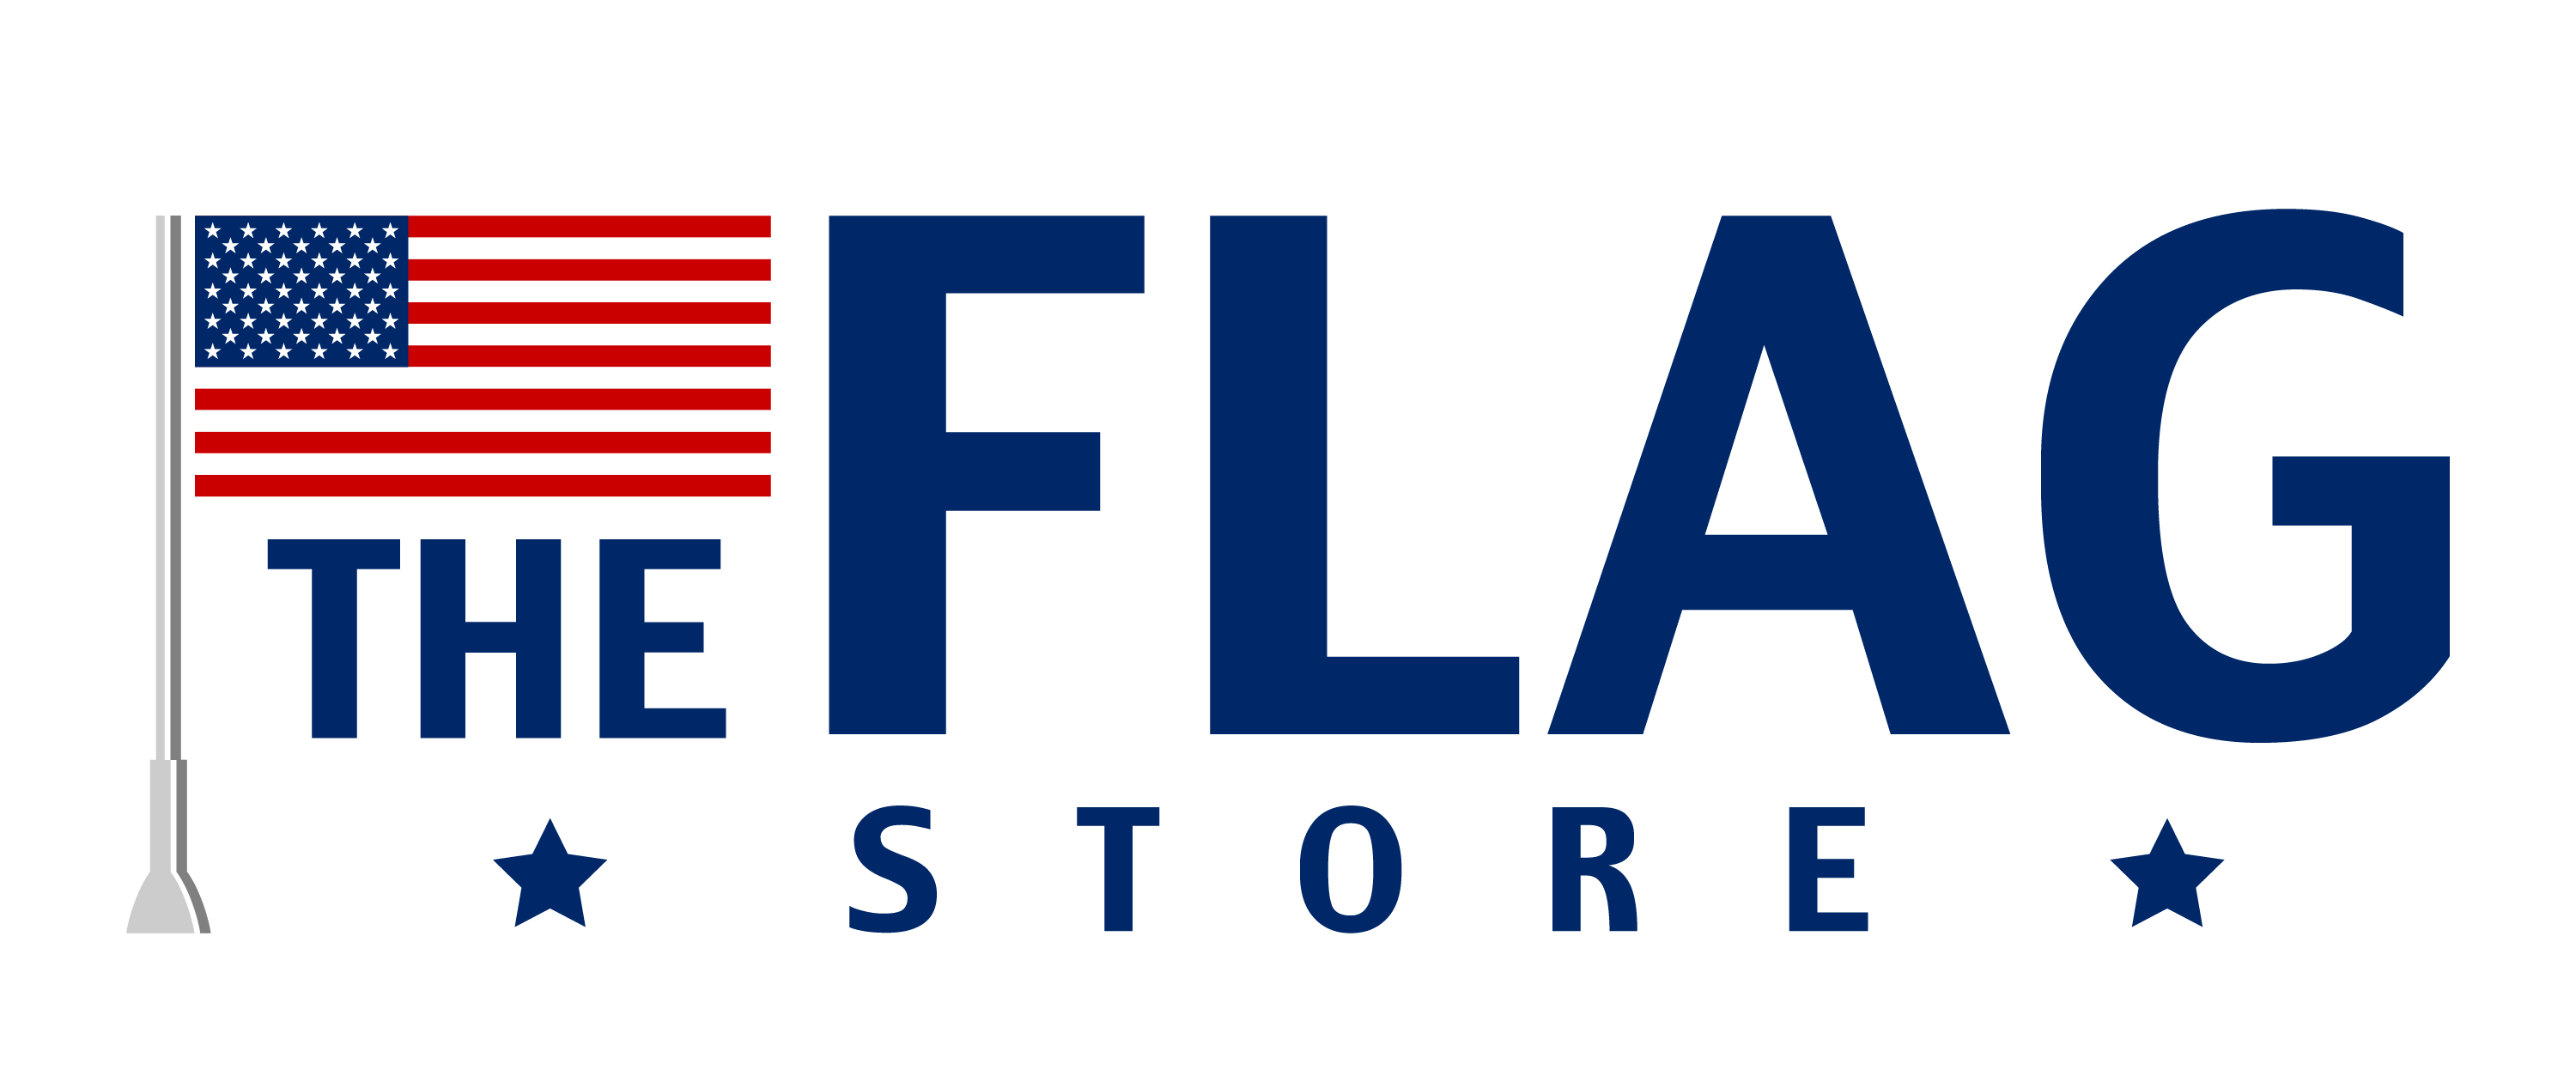 The Flag Store